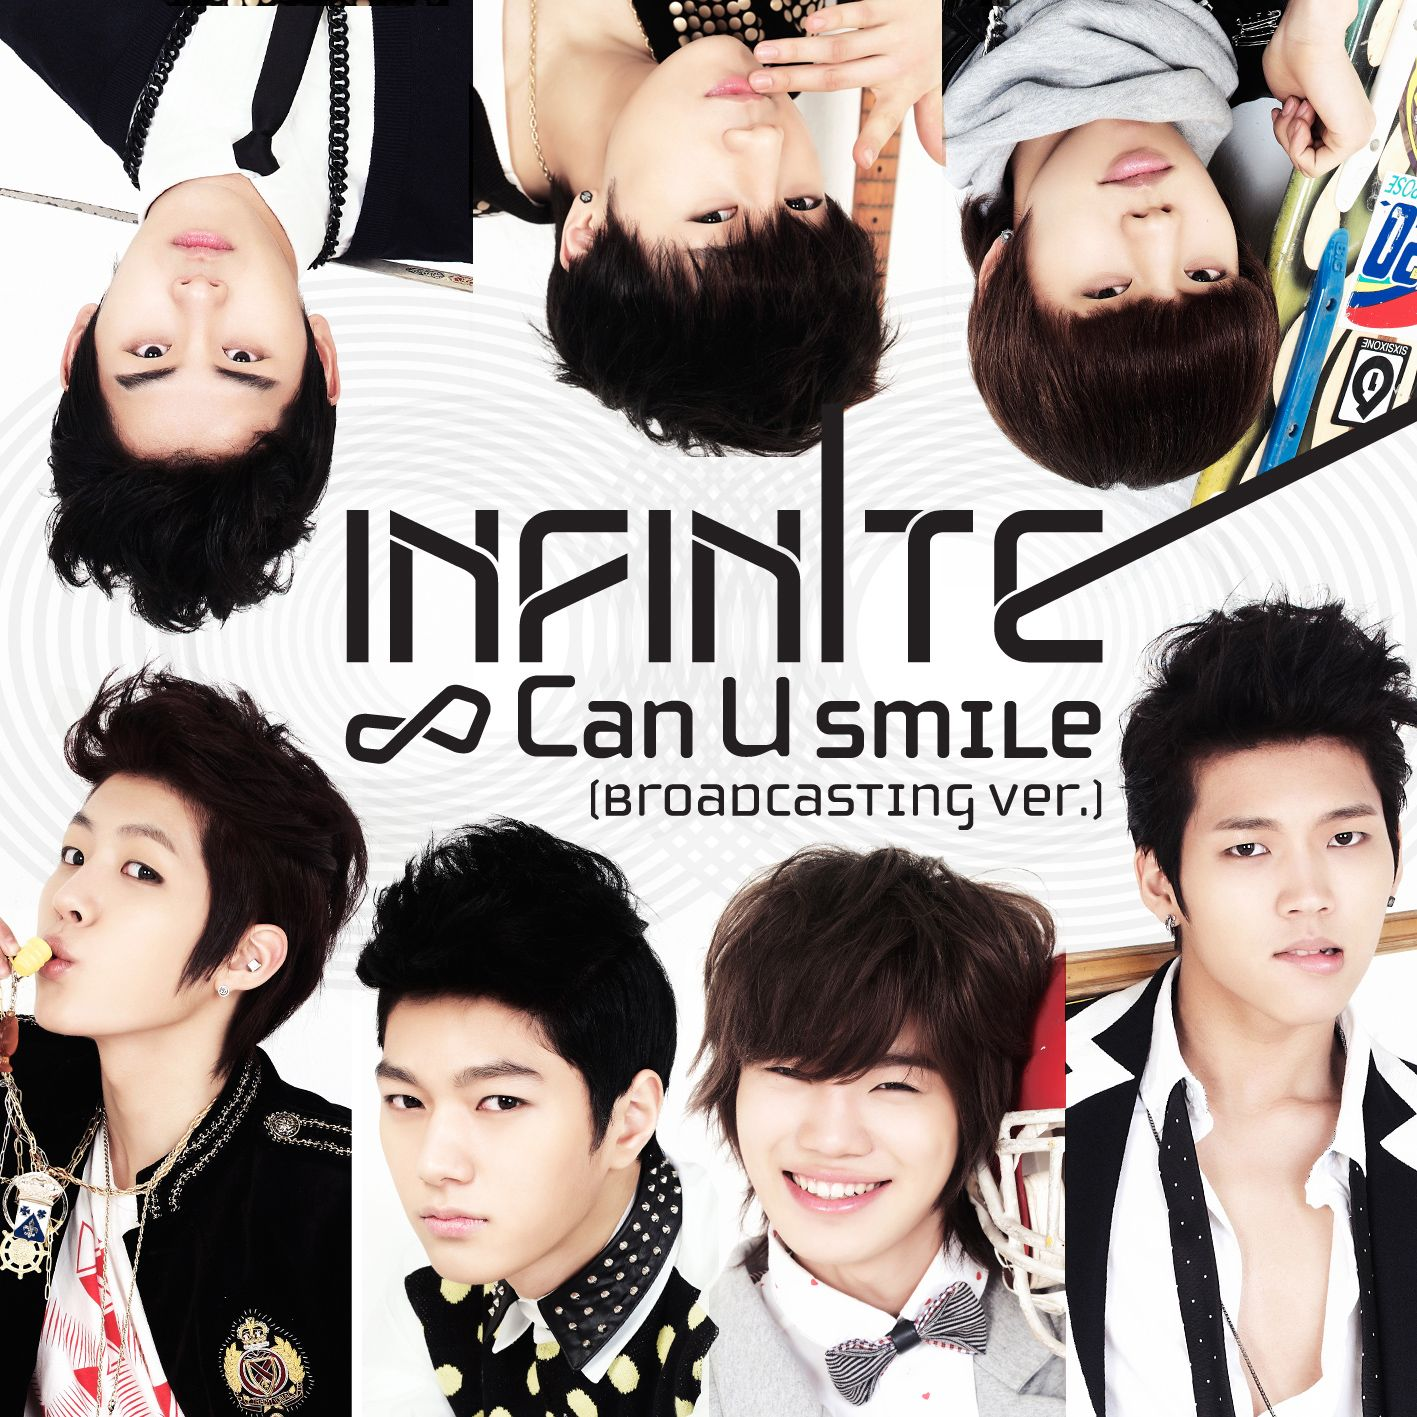 Download [Single] Infinite – Can U Smile Broadcasting Ver.